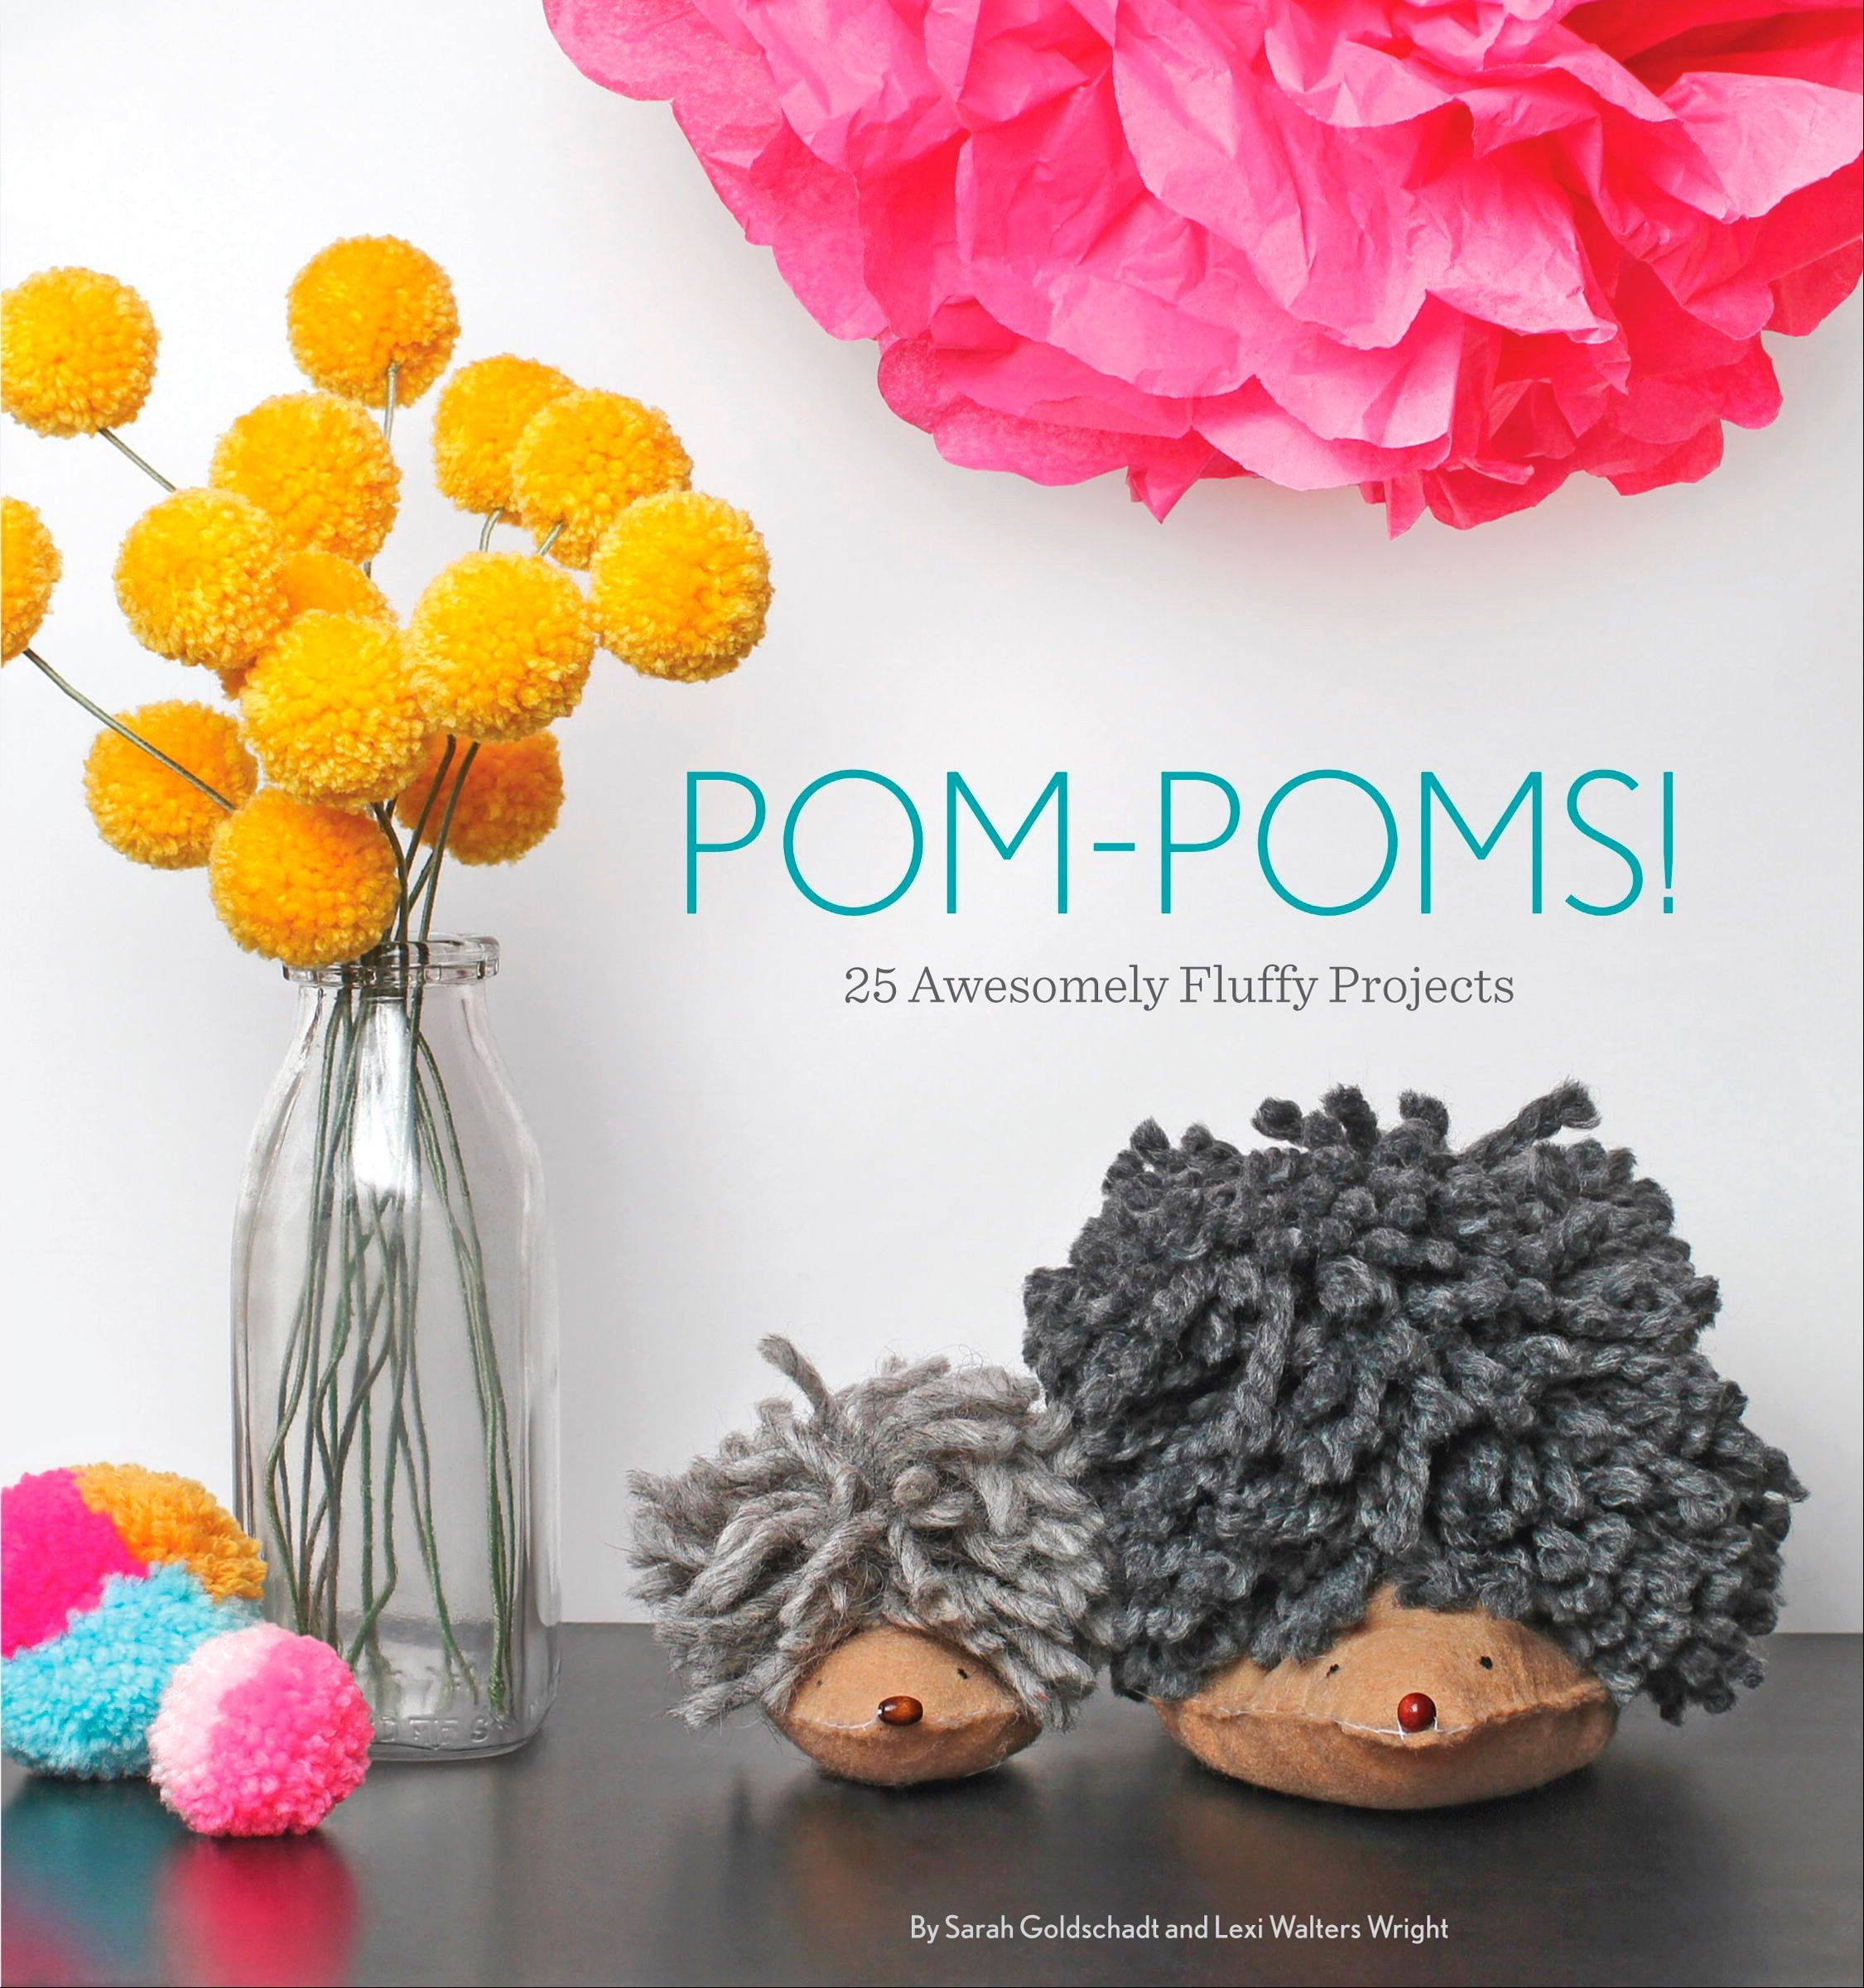 """Pom-Poms!"" by Sarah Goldschadt and Lexi Walters Wright (Quirk Books, 2013)."